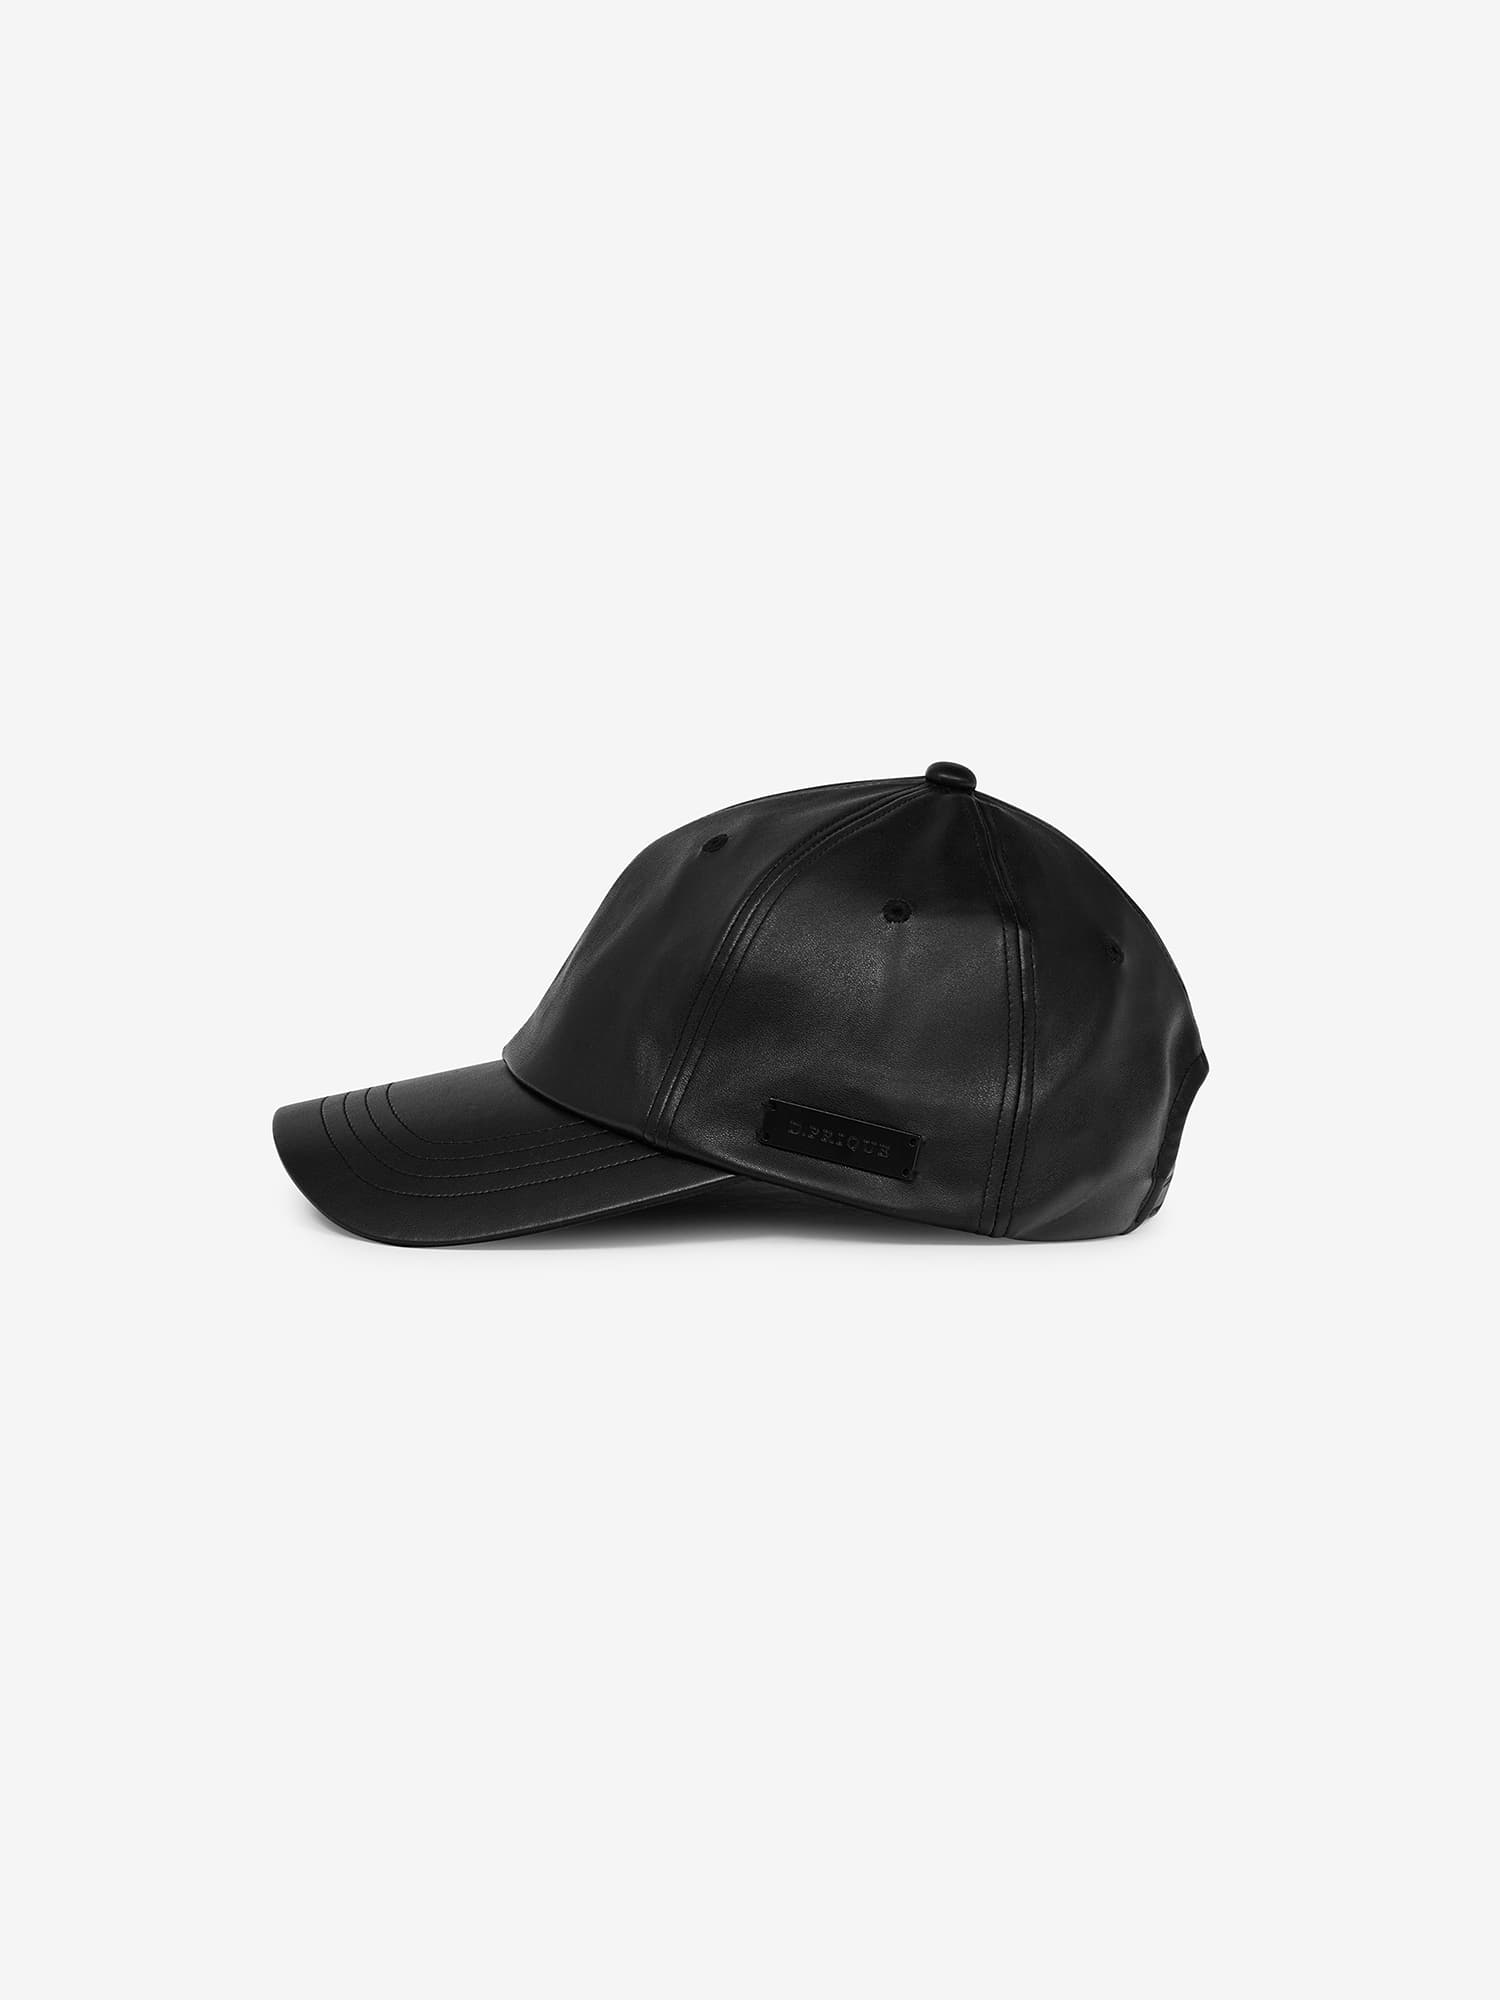 ECO-LEATHER CAP - BLACK